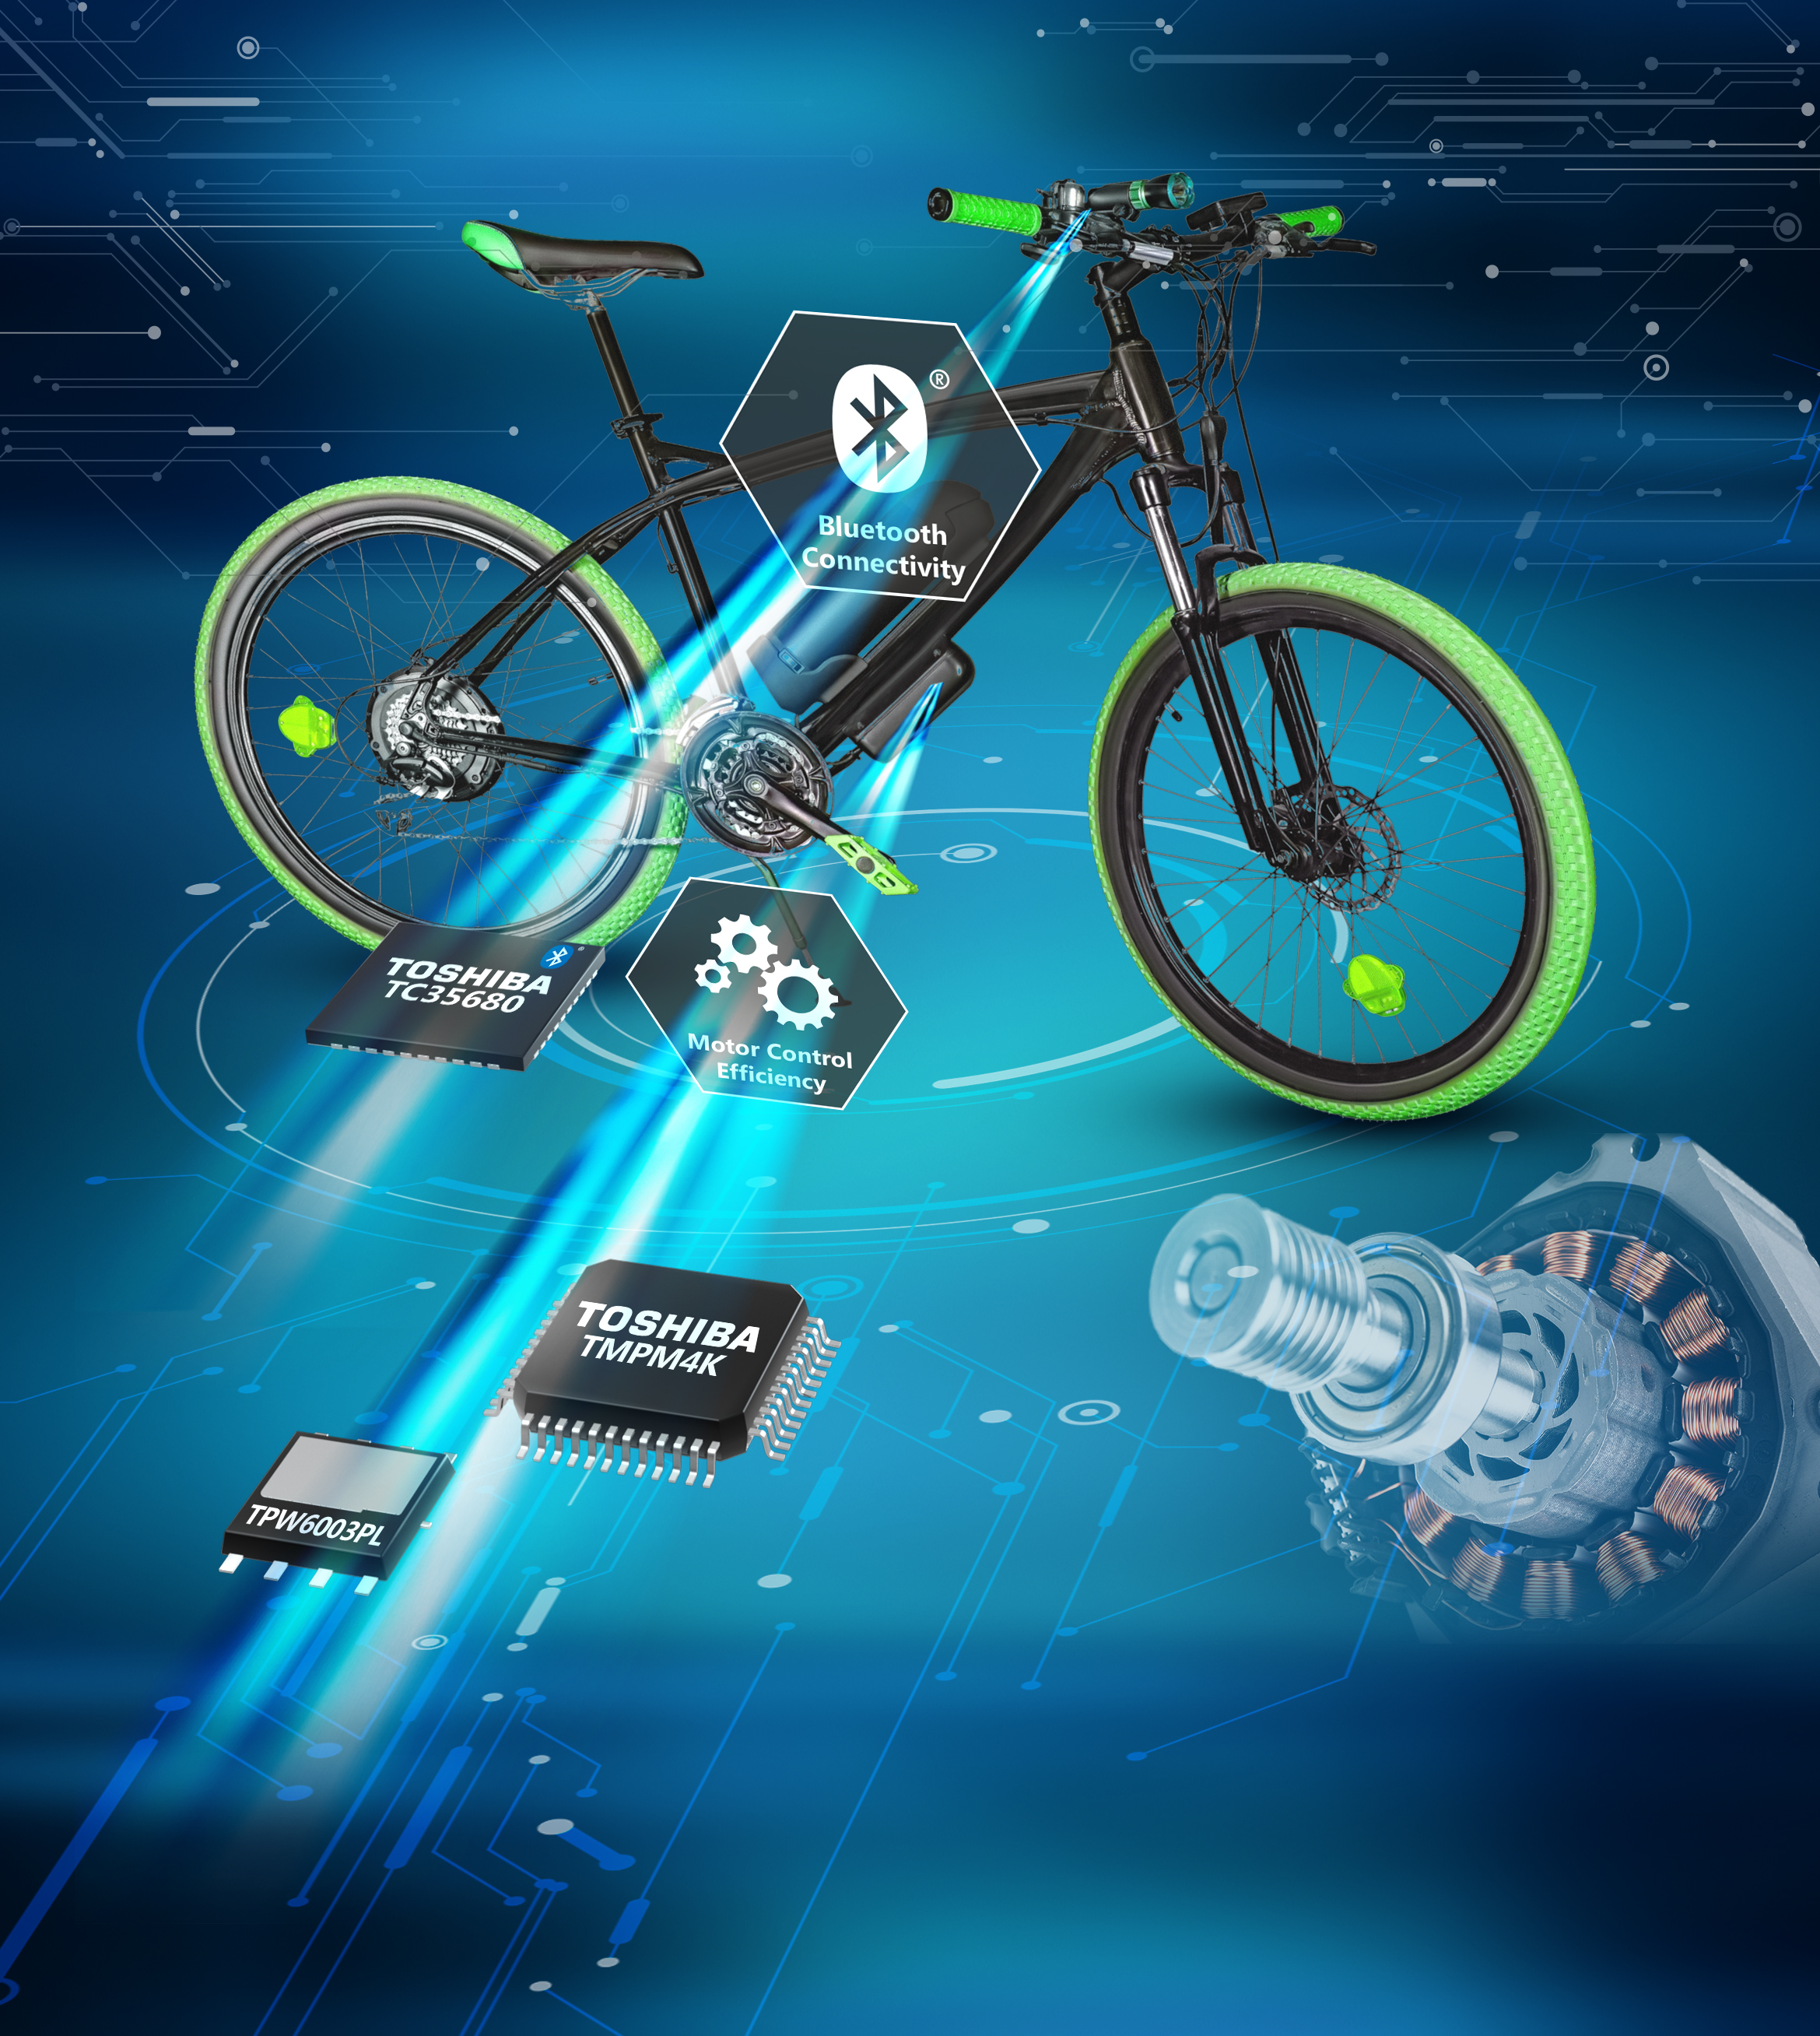 Addressing the challenges of e-bike design